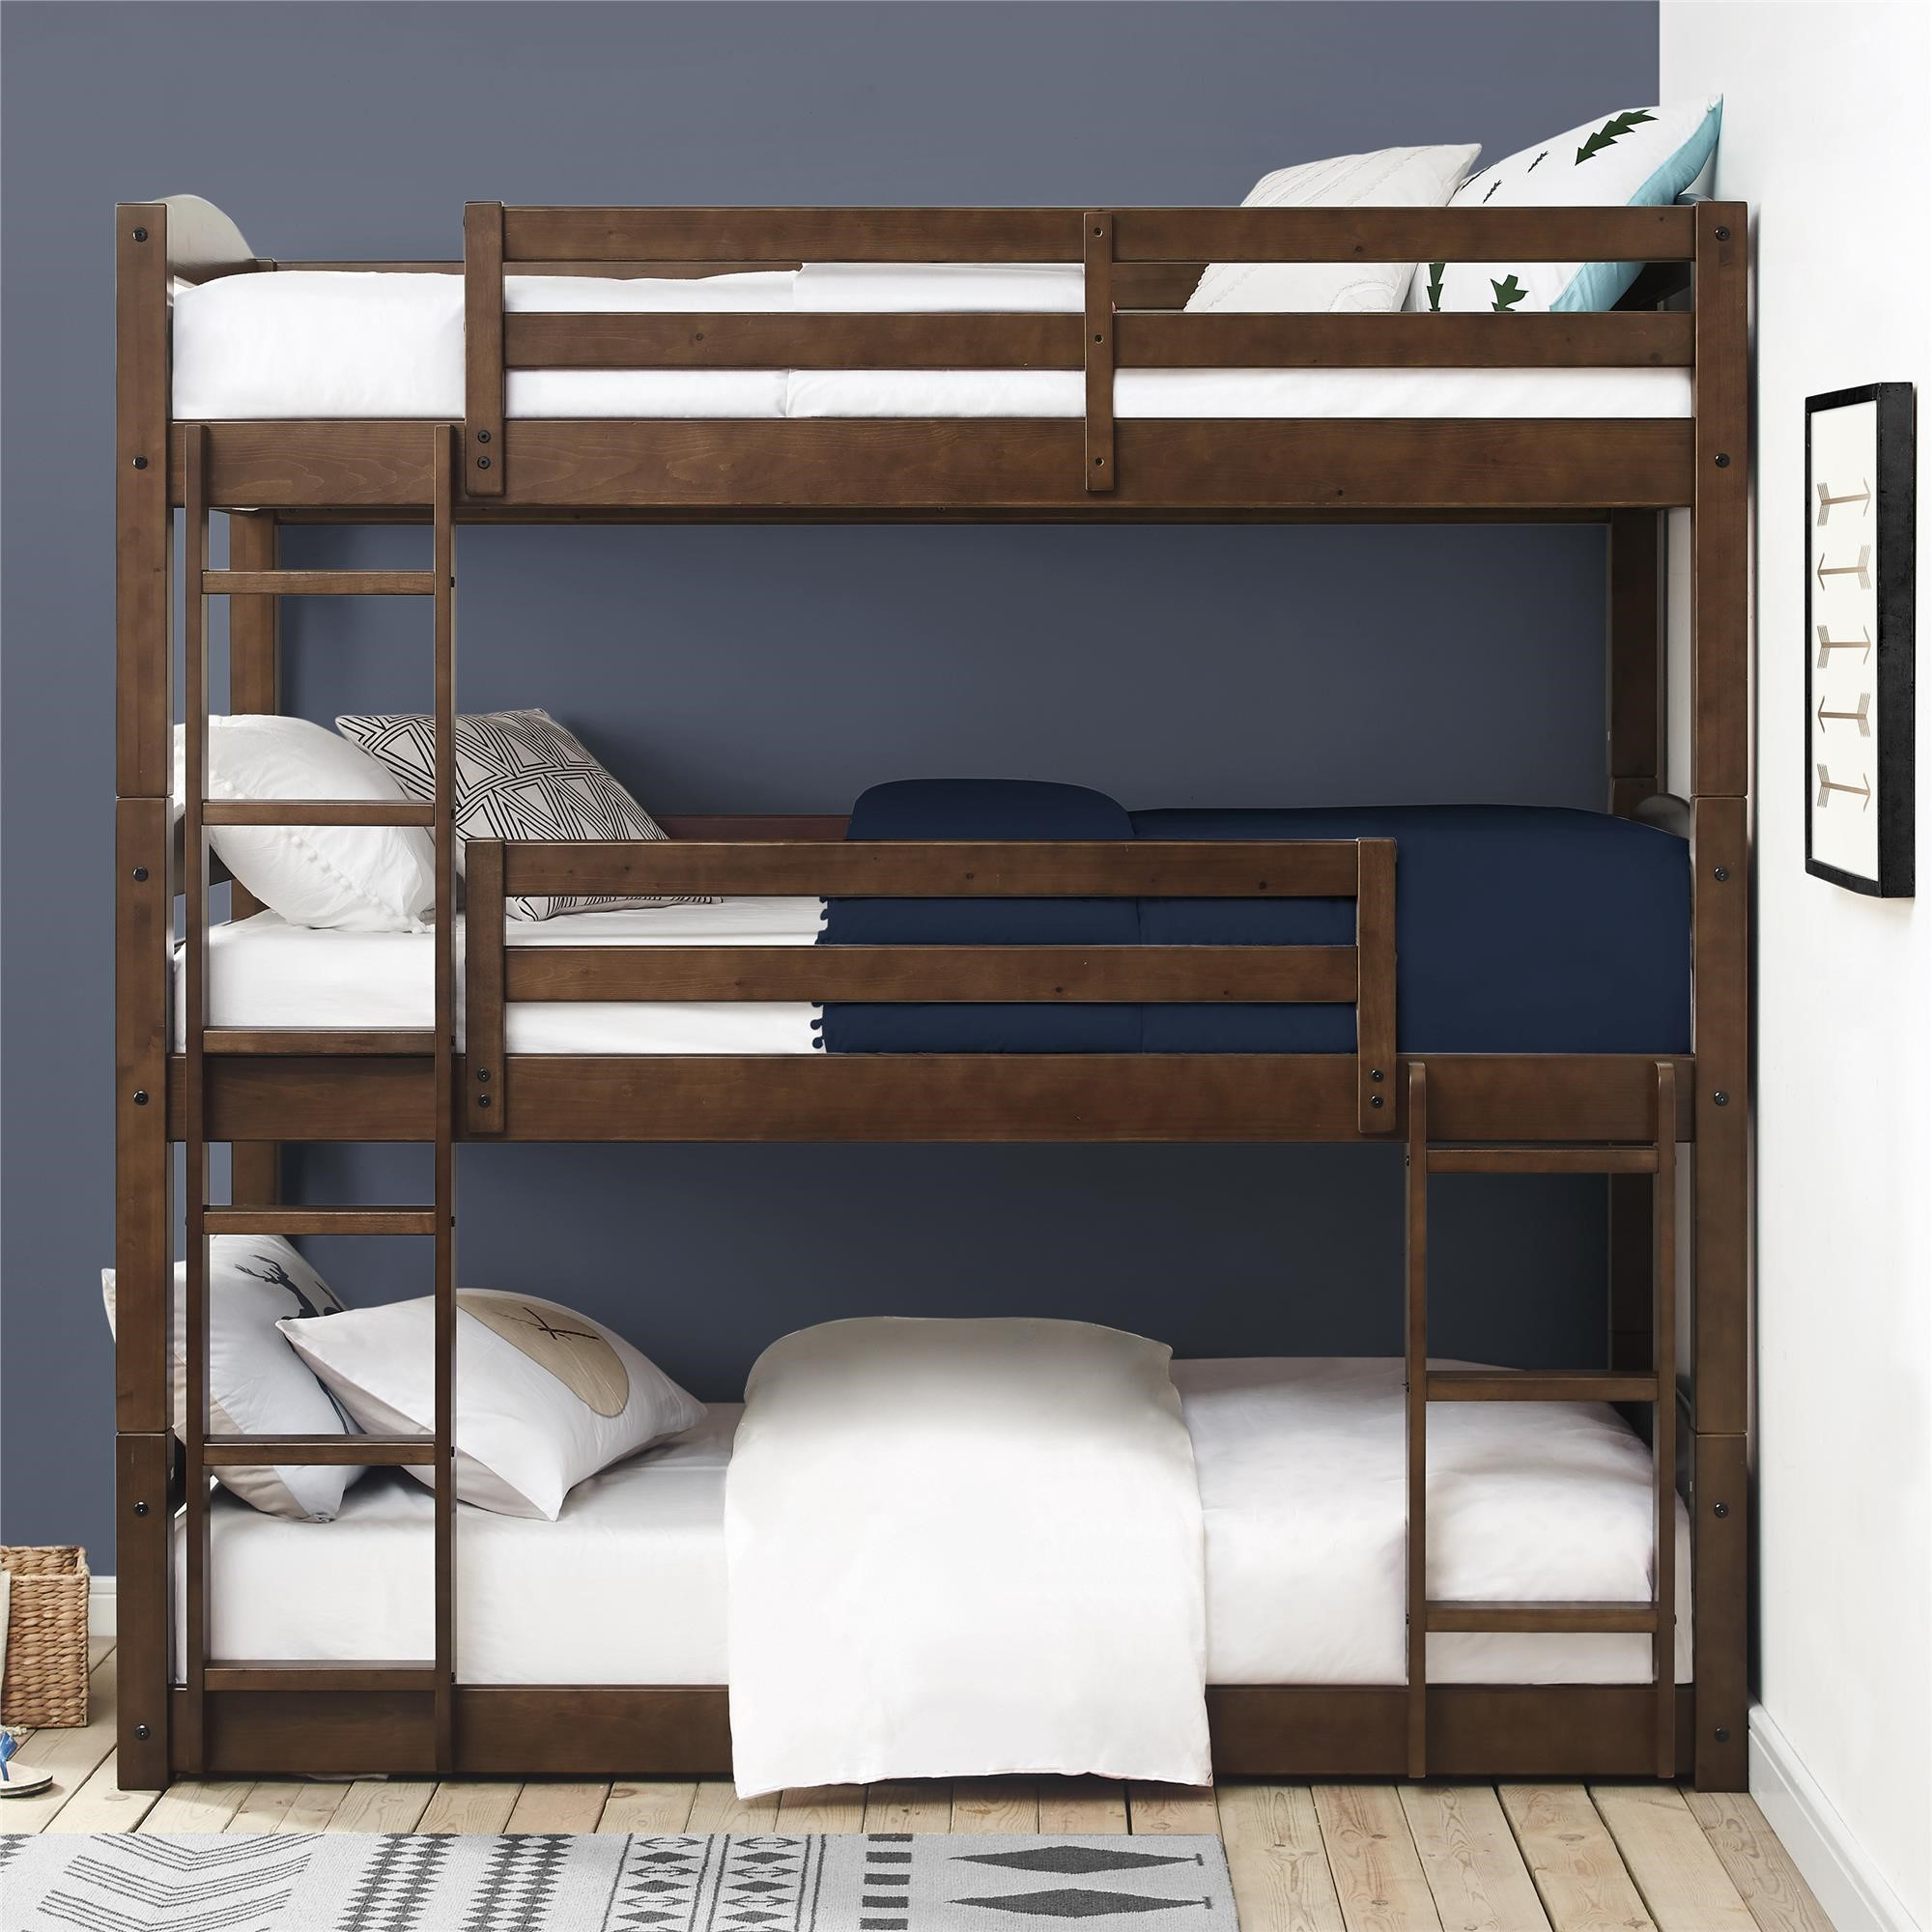 Picture of: Portable Bunk Beds Safety Tips For Parents And Kids On How To Use Bunk And Loft Beds Safely Free Classified Advertisement India Worldwide